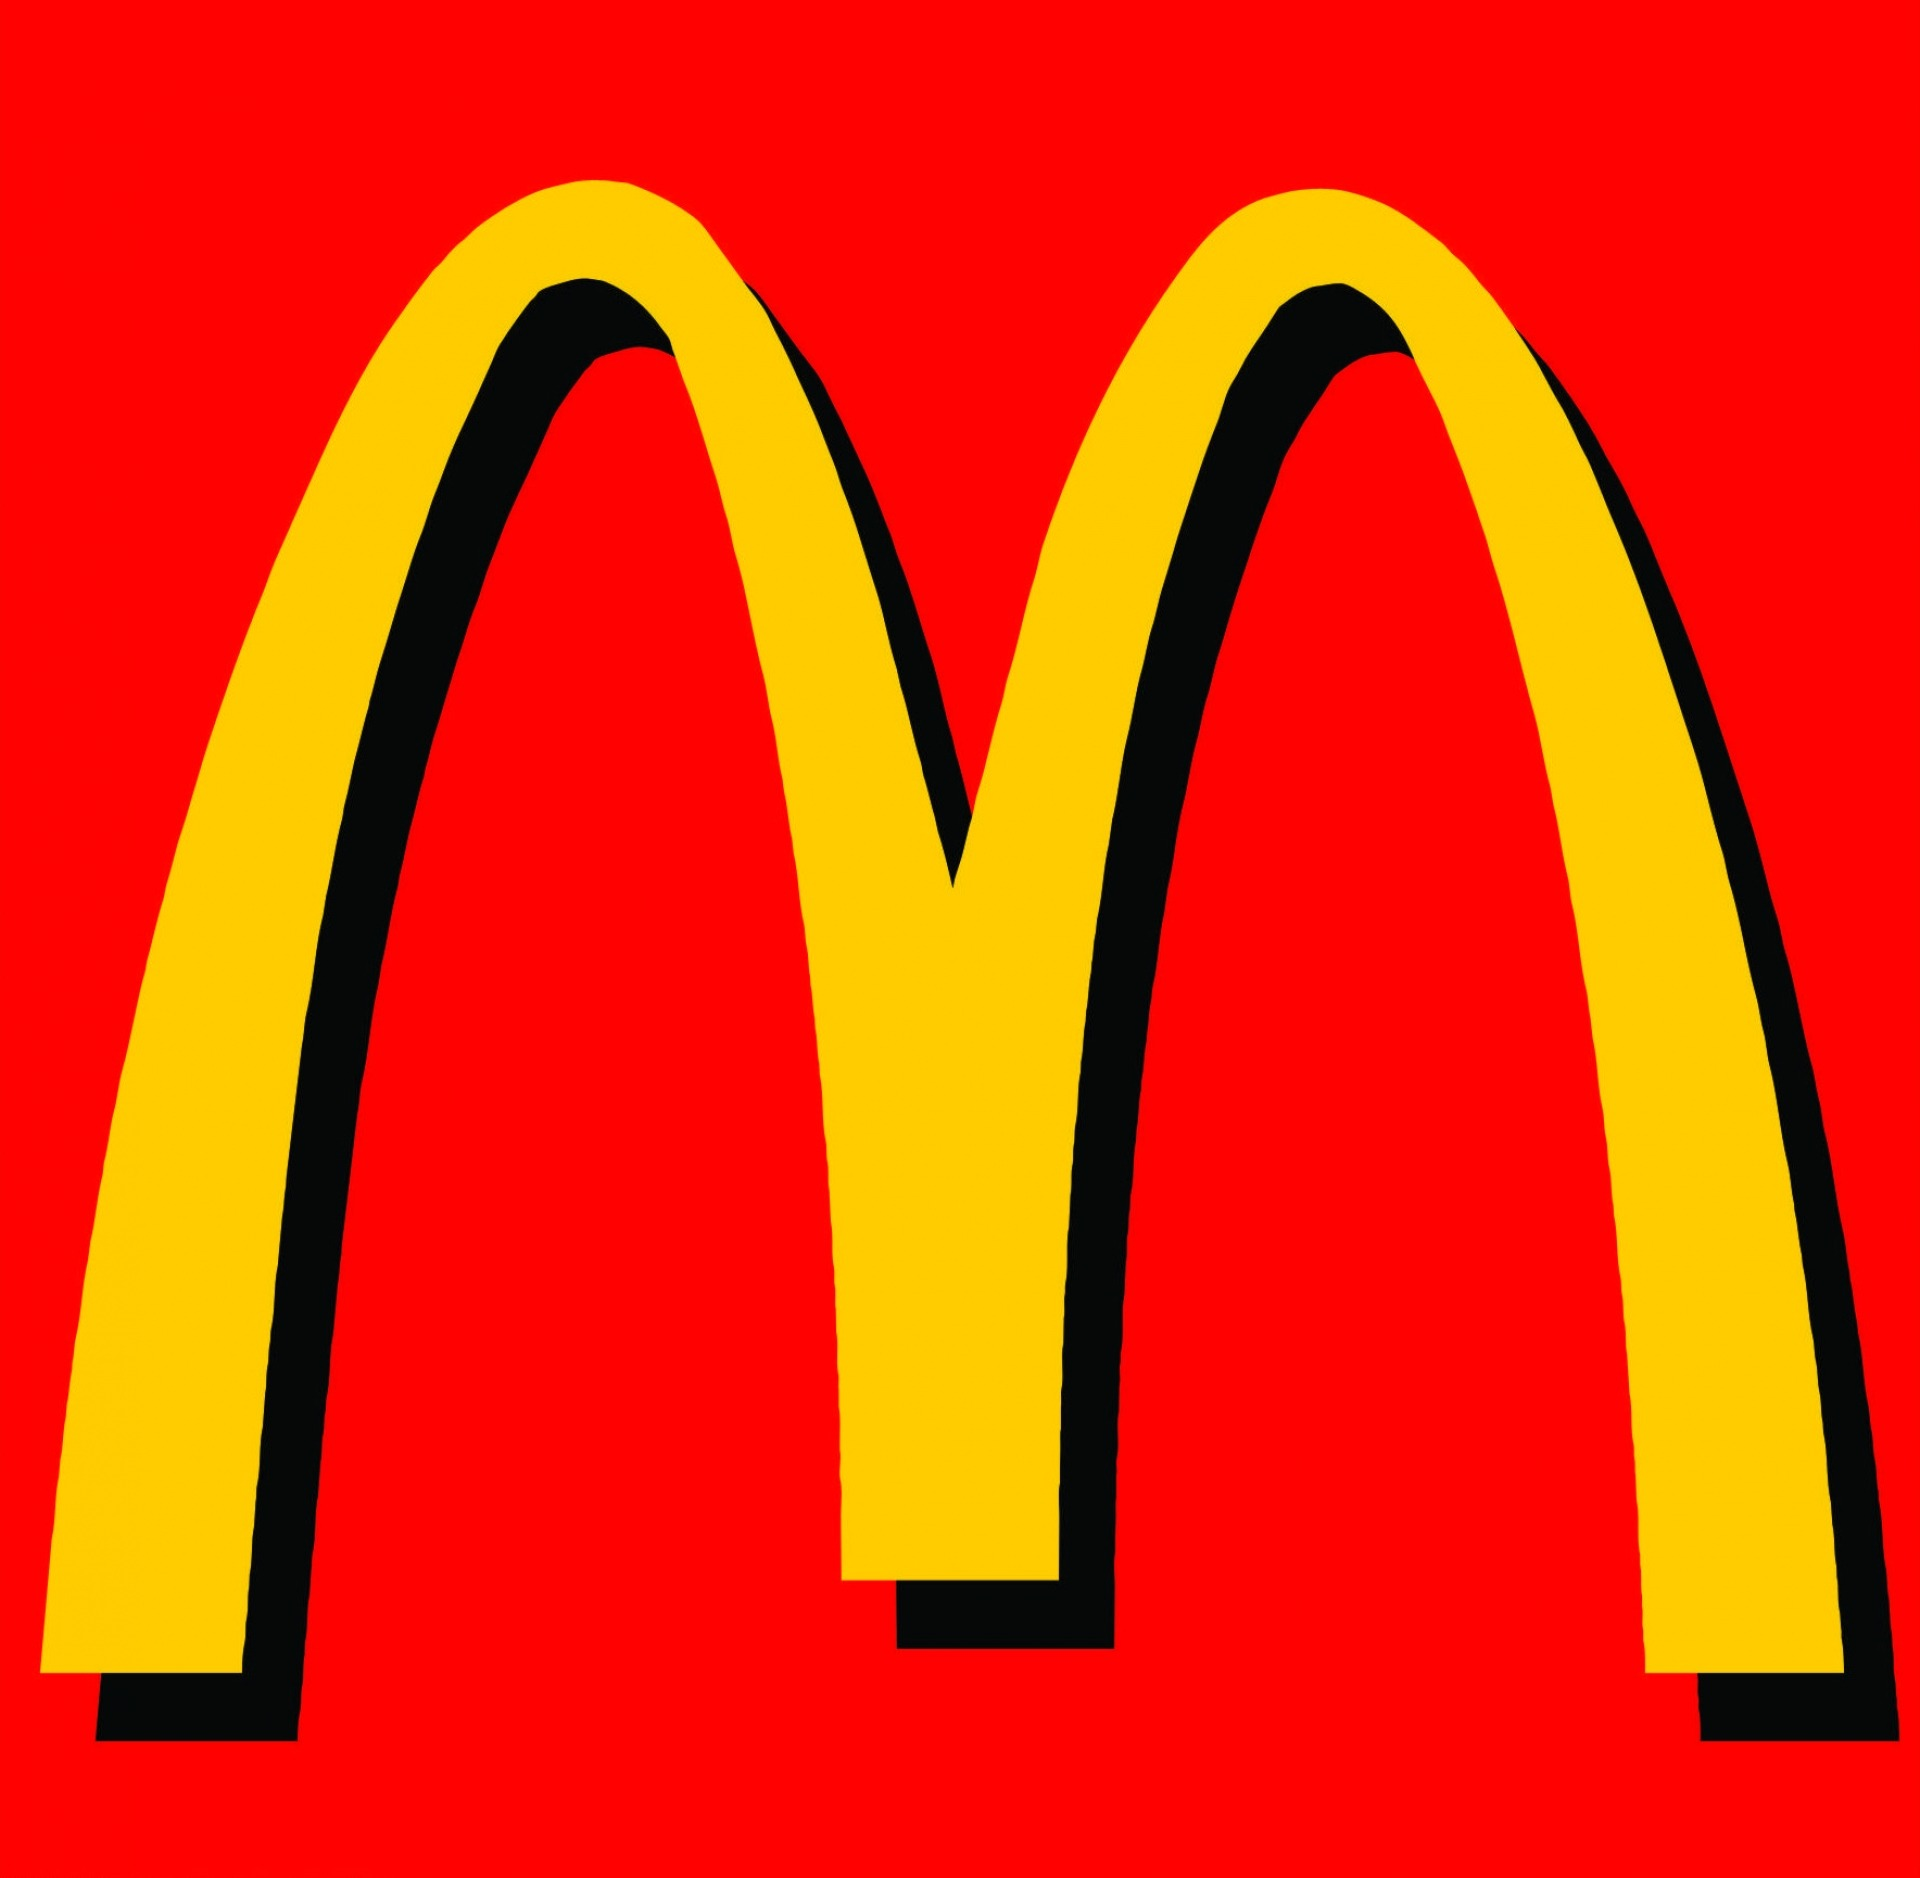 McDonald's Arch Giftcard Promotion: Get One Free Big Mac ...